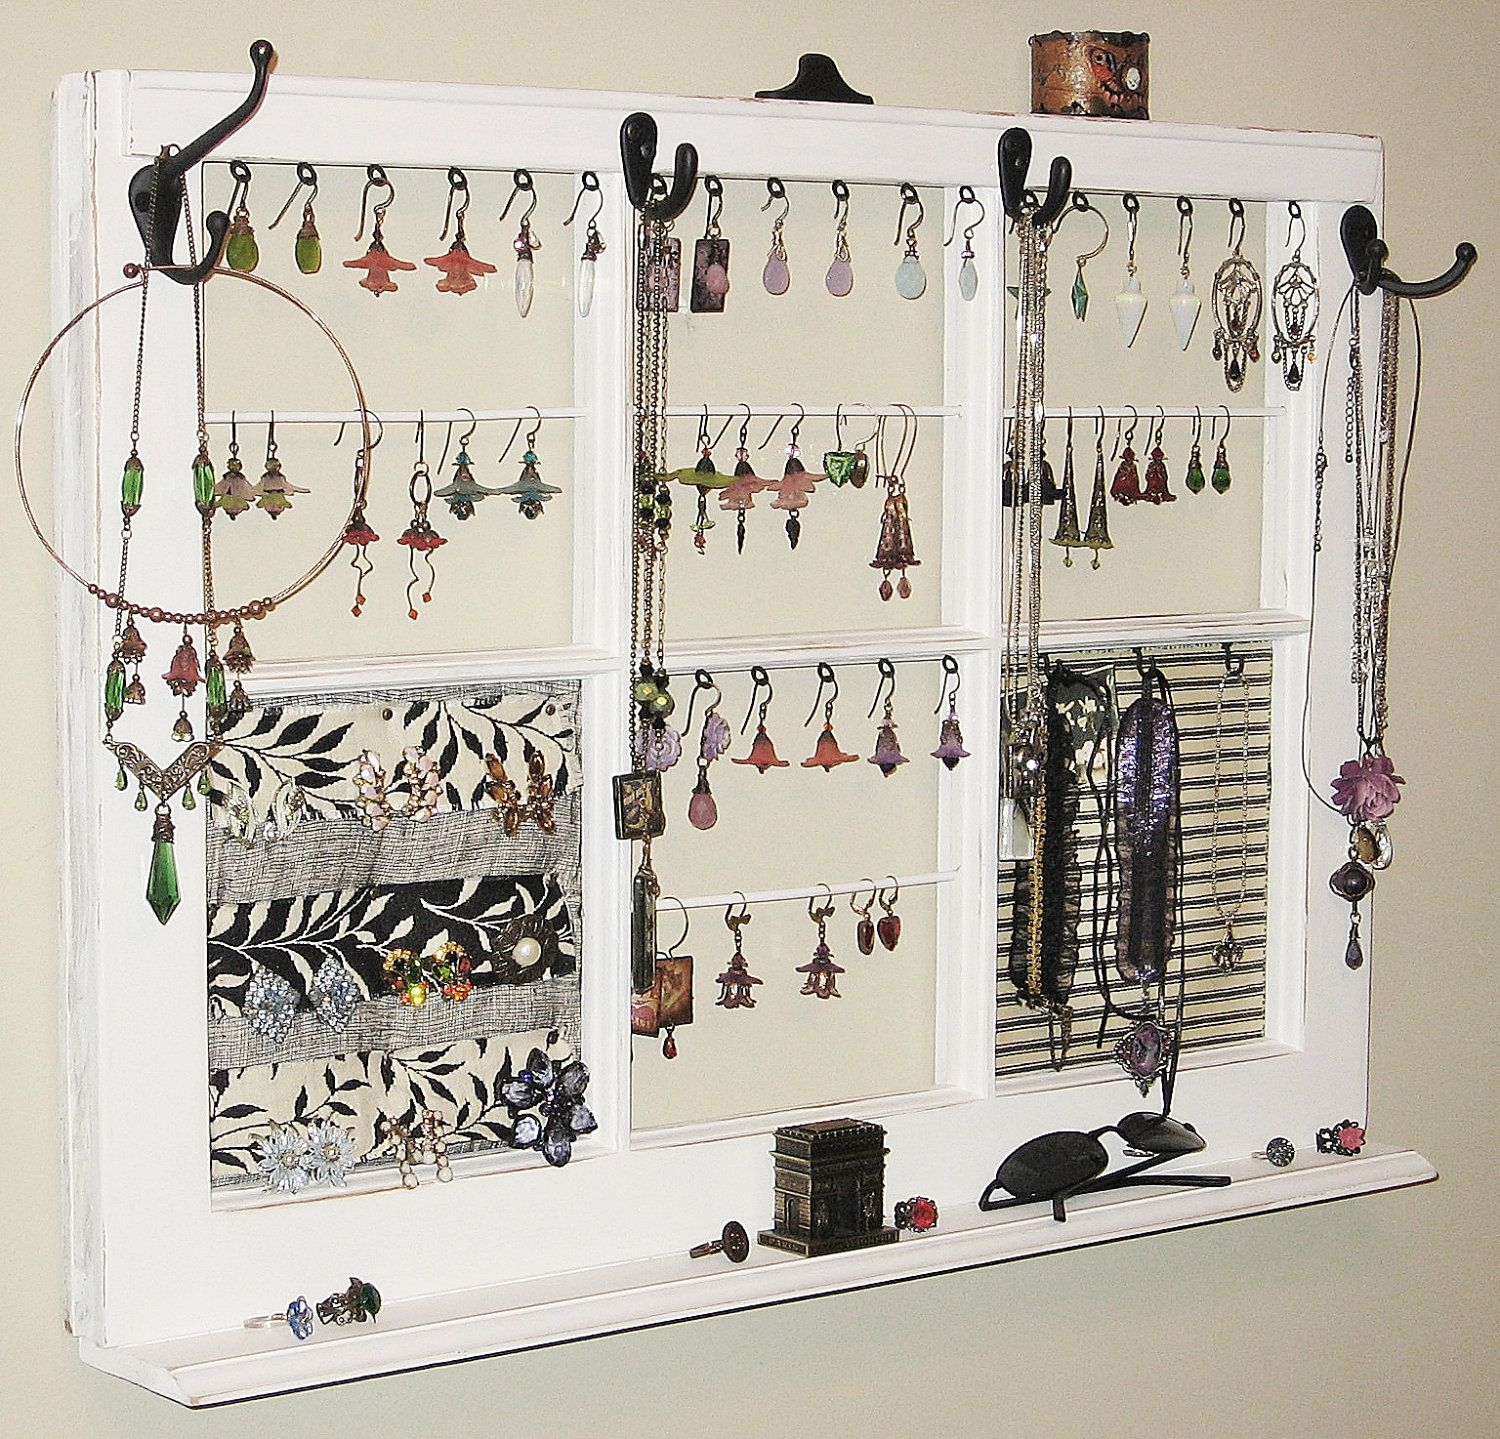 Wall Hanging Jewelry Organizer upcycled decor window frame wall hanging jewelry organizer display